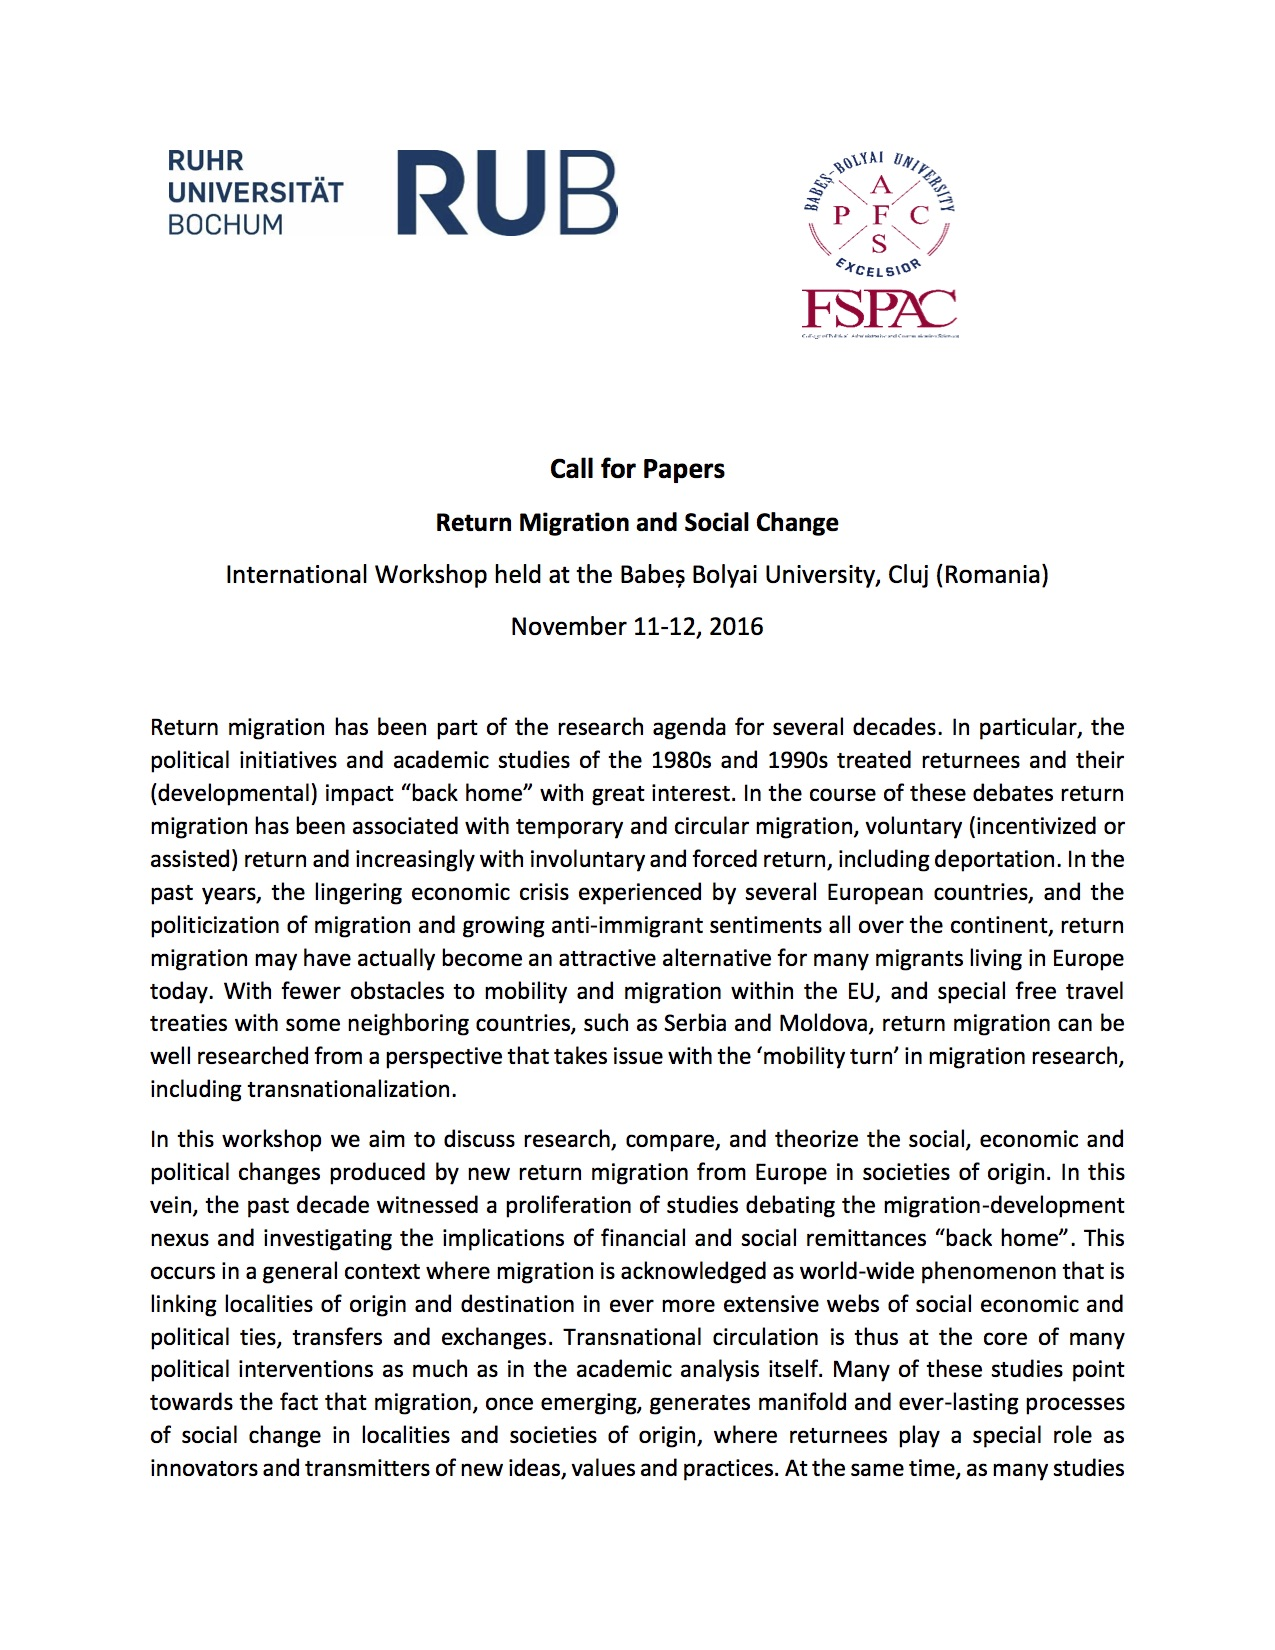 Call for Papers Return Migration and Social Change